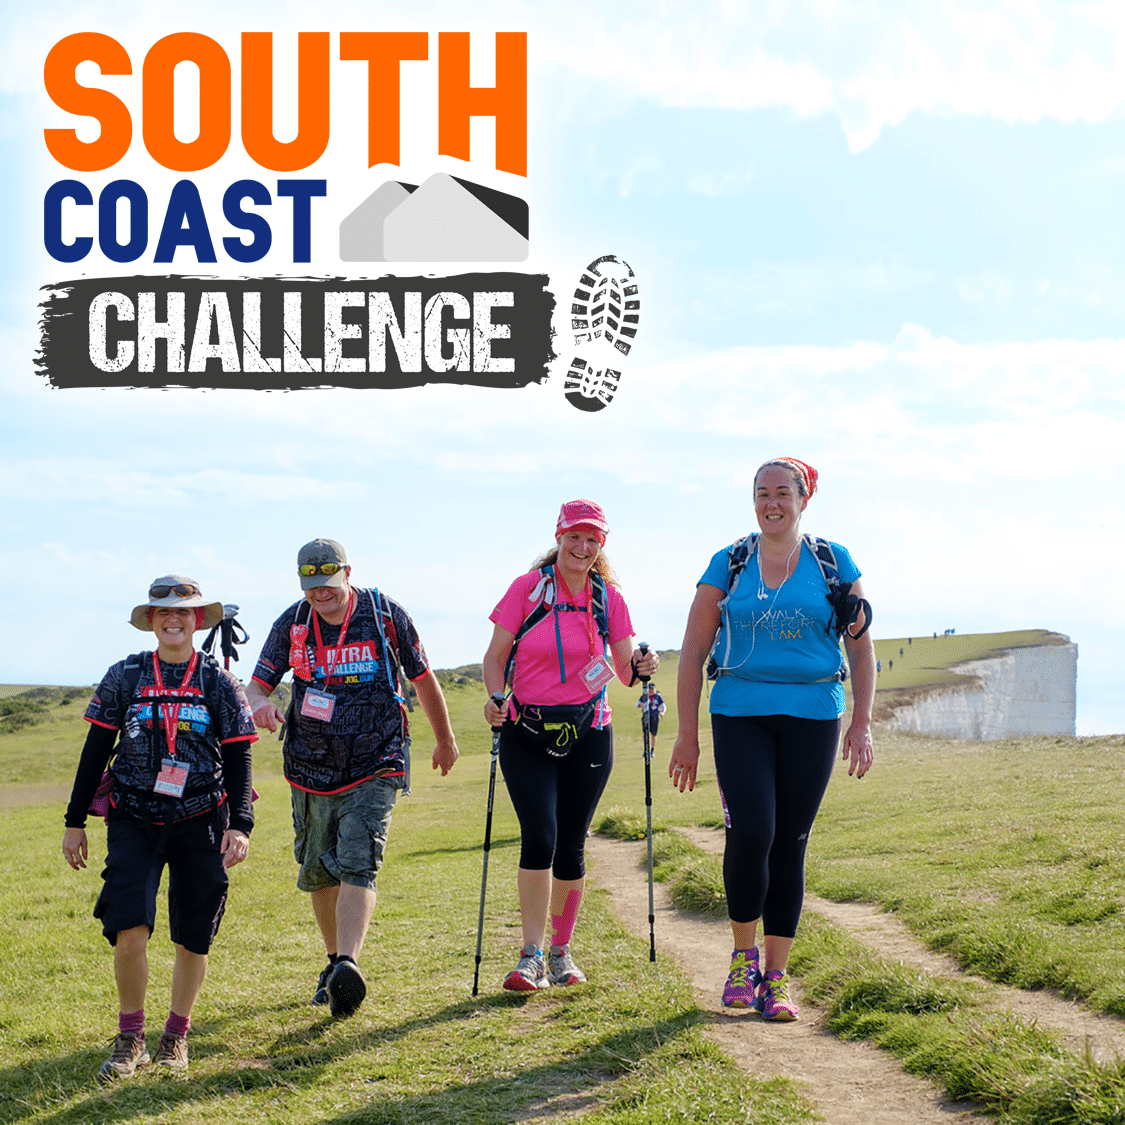 Image shows four walkers walking along a coastal path. White cliffs can be seen in the distance. 'South Coast Challenge' is written on the top left of the image.